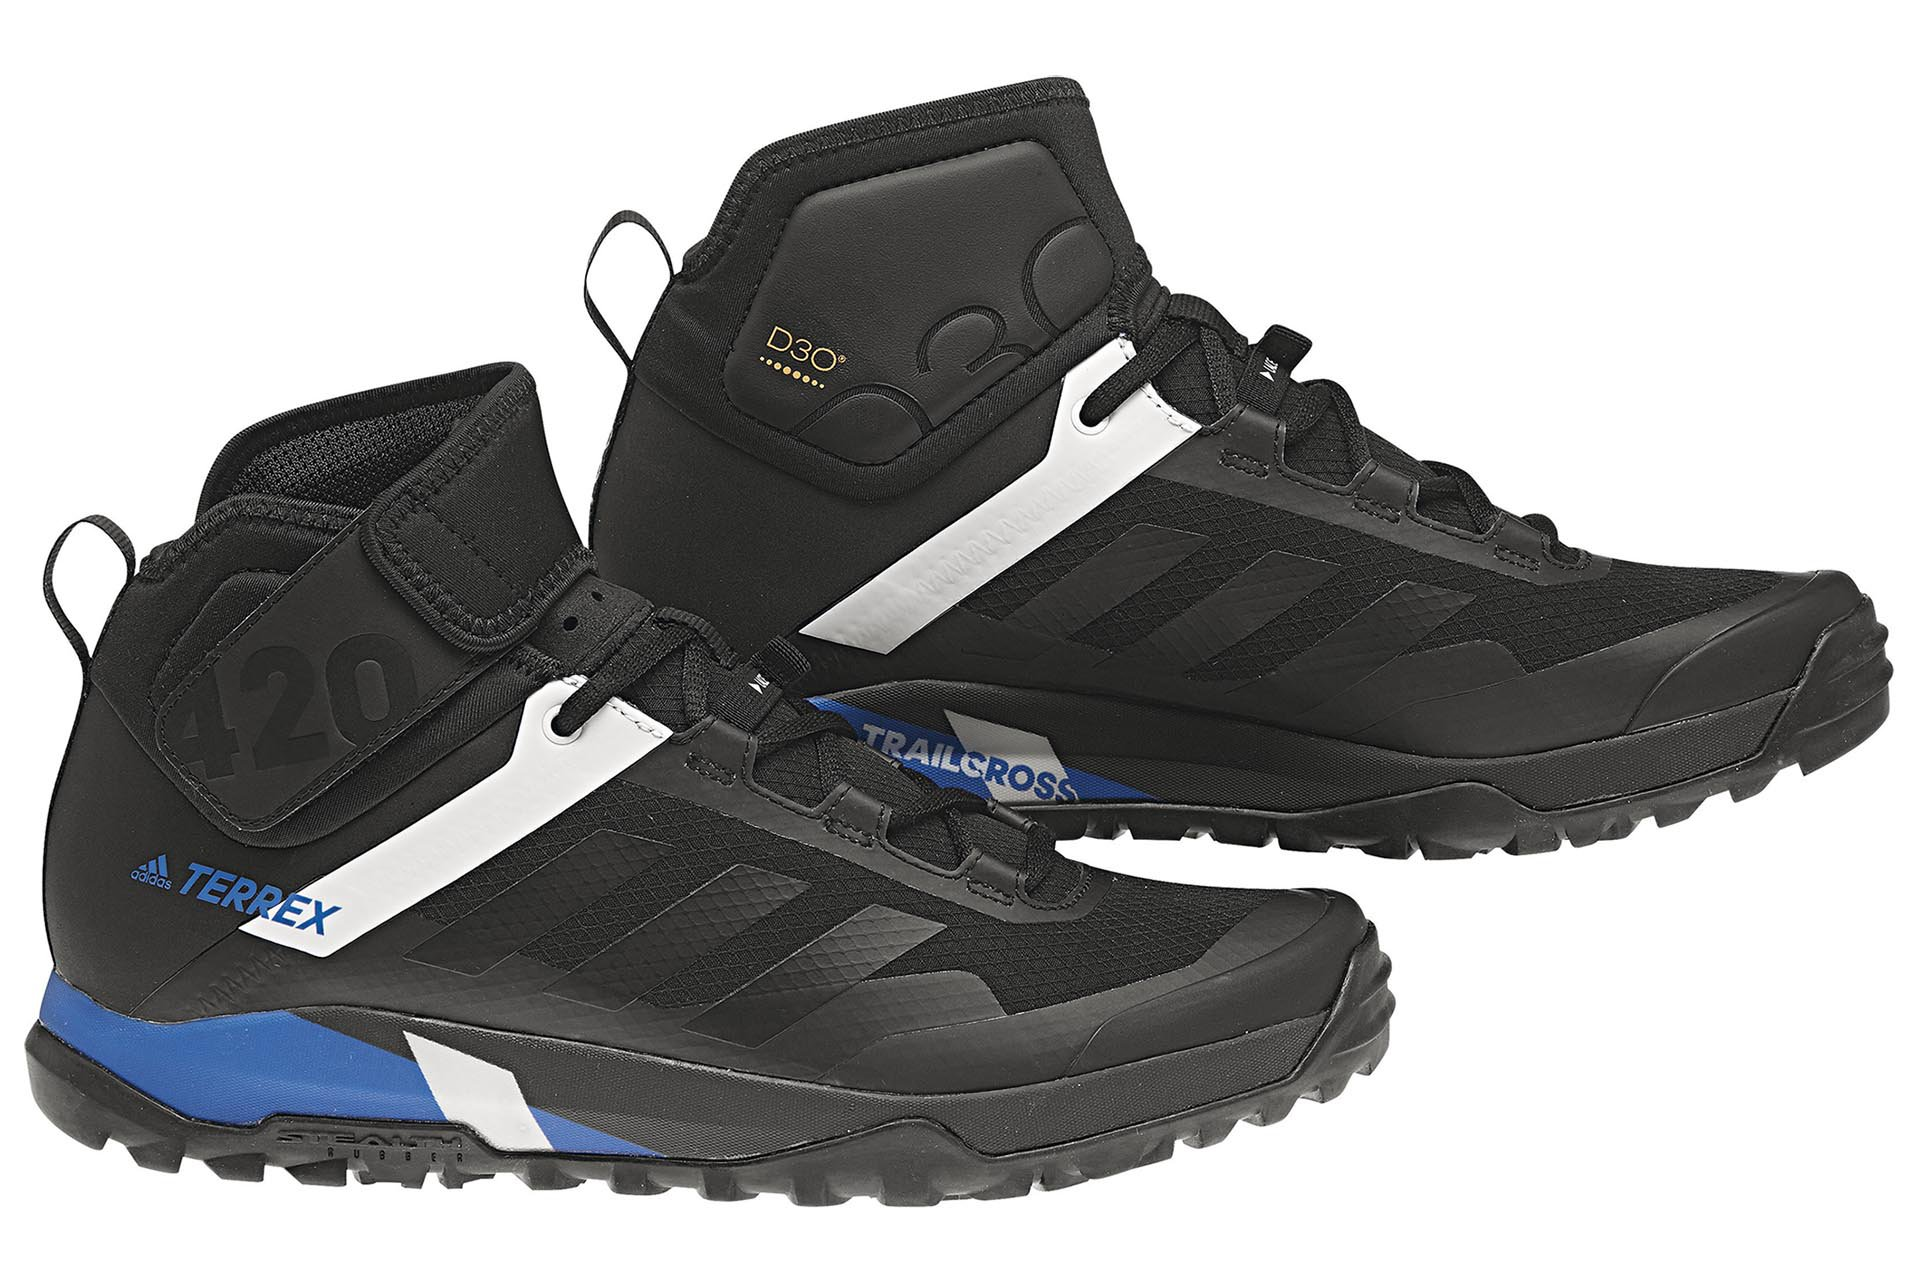 adidas_TERREX_Trail_Cross_Protect_Shoes_Herren_blue_beauty_core_black_collegiate_navy[1920x1920] copy.jpg